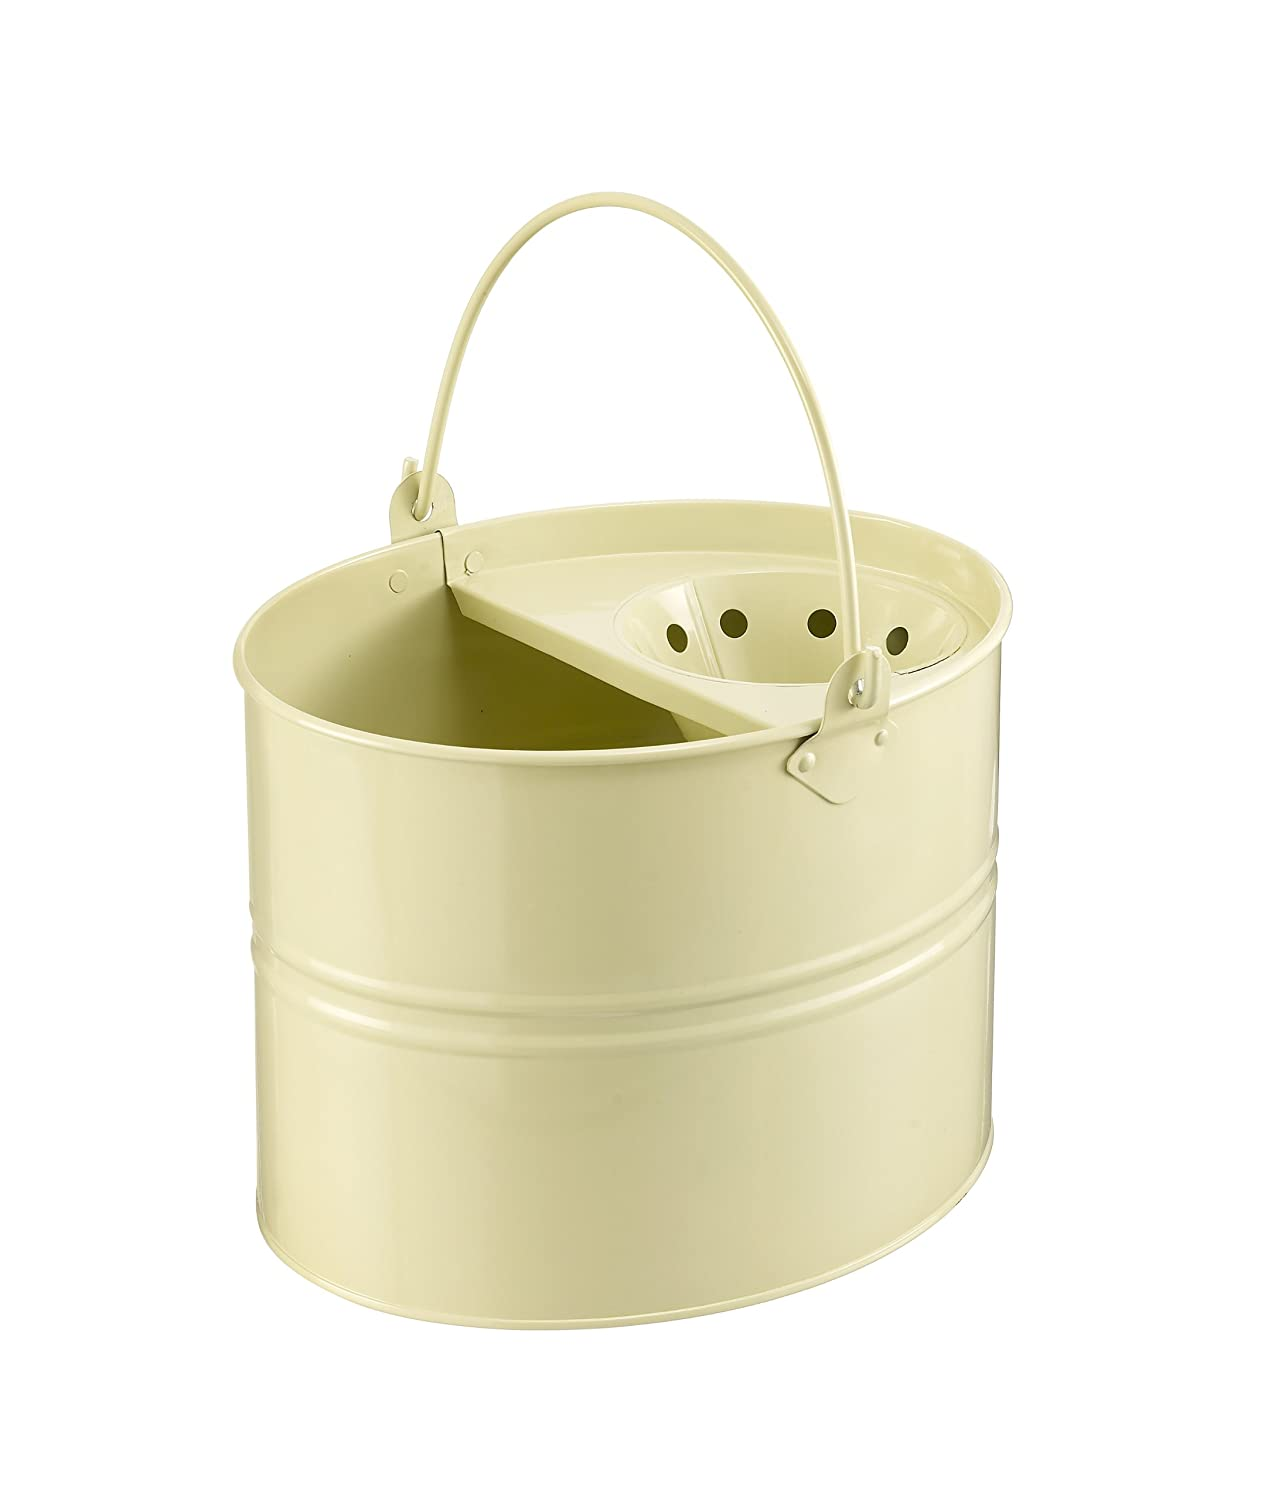 Lily and Brown Metal Mop Bucket